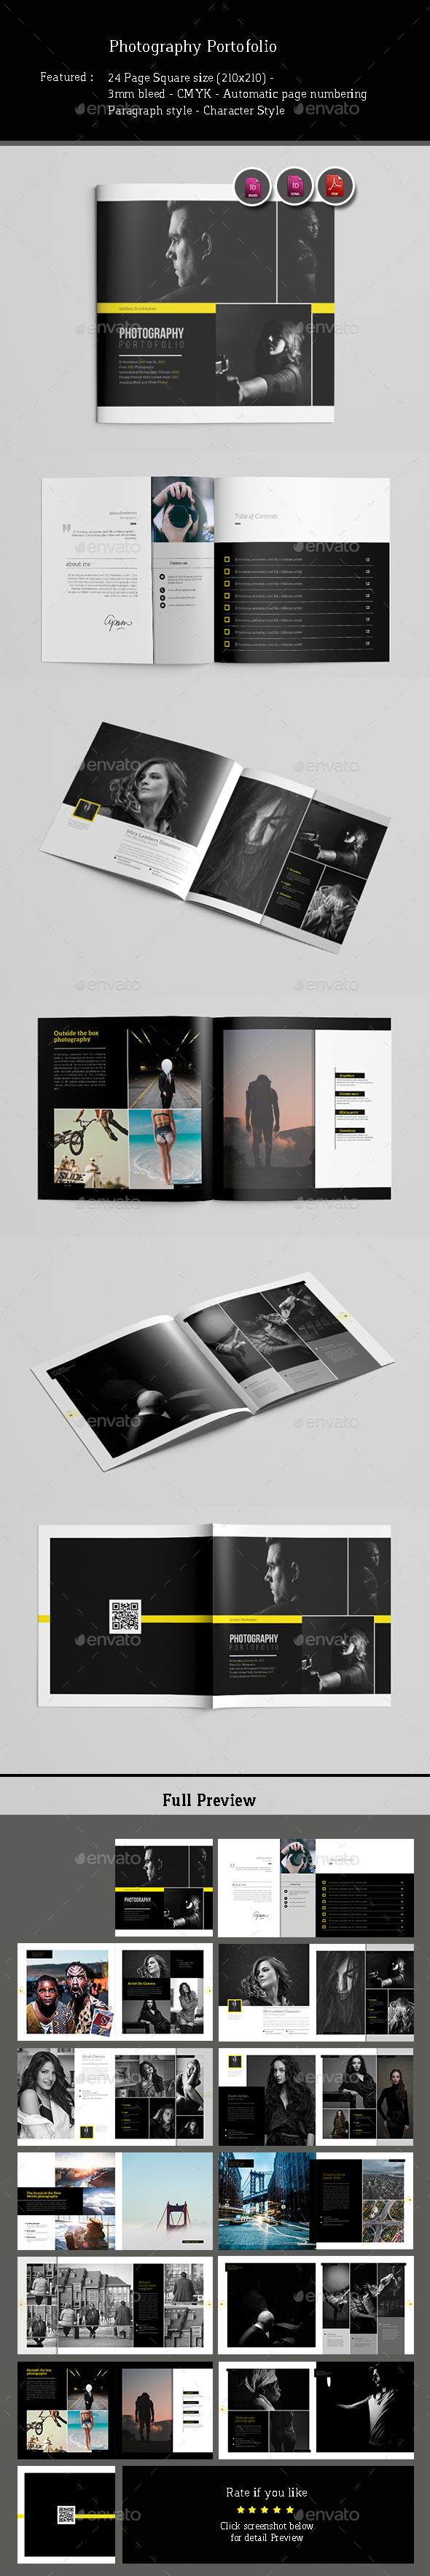 Photography Portofolio Template - Photo Albums Print Templates